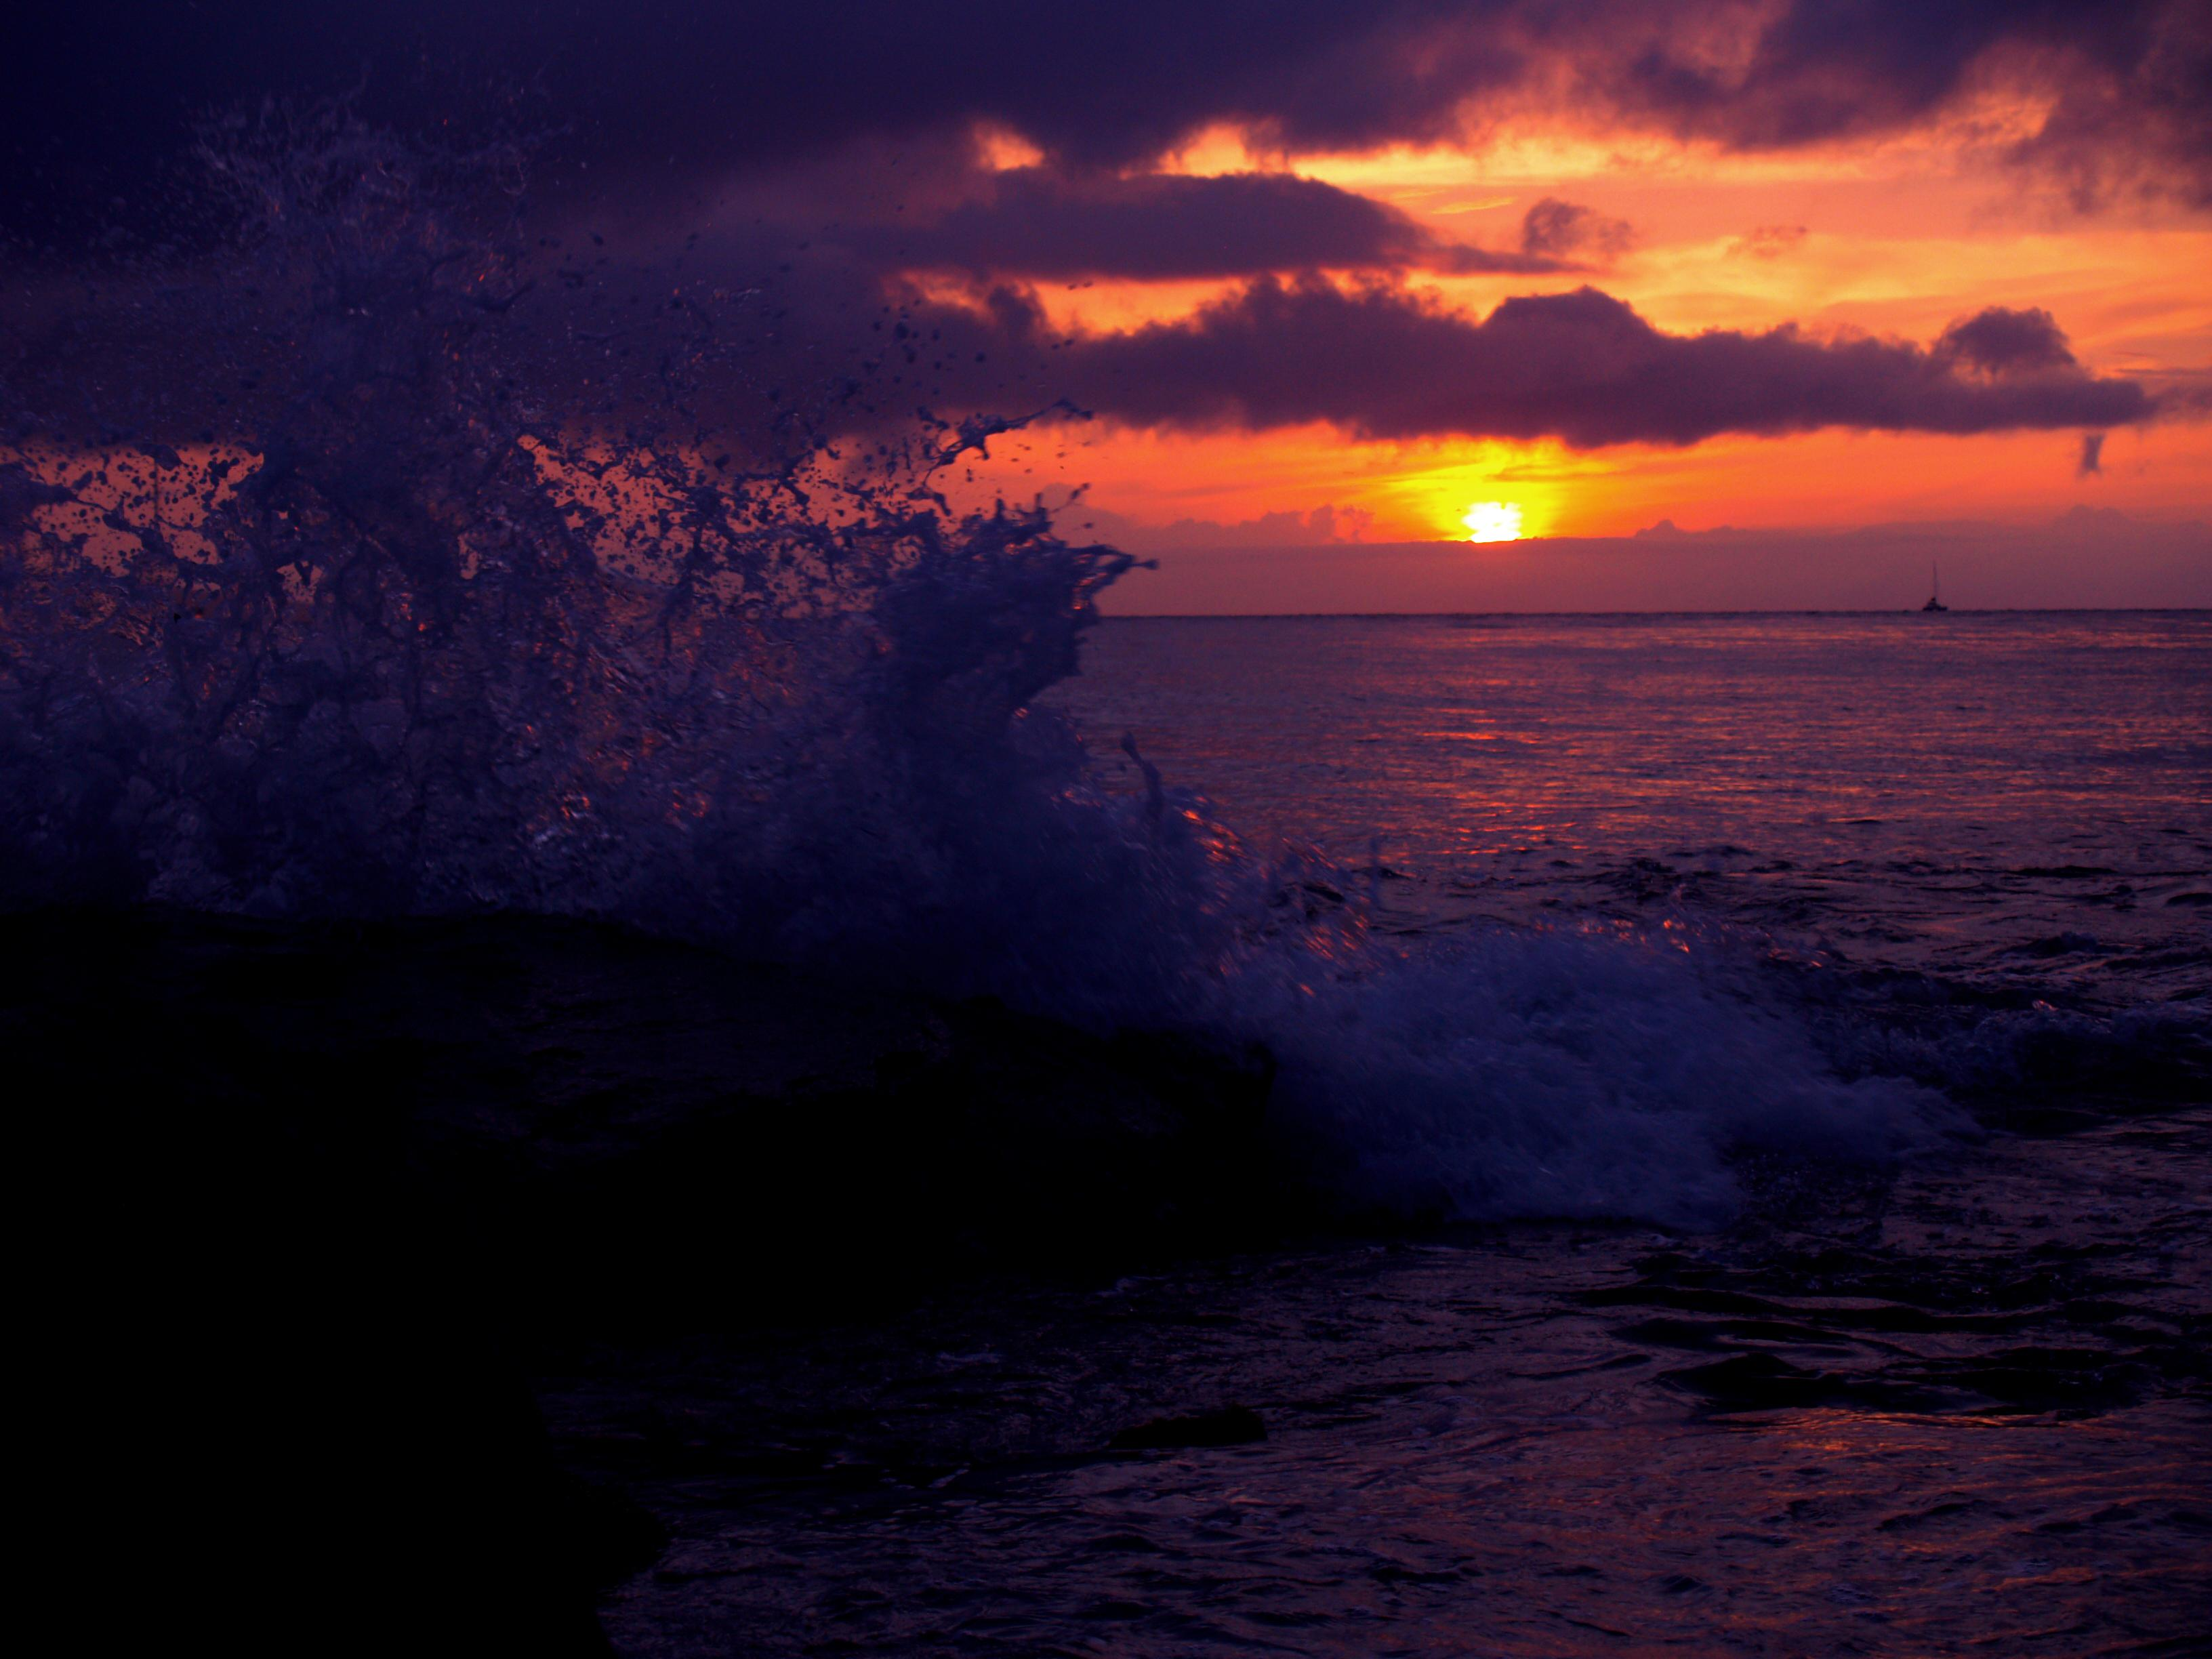 """Maui West Shore<br />Photo <a href=""""//creativecommons.org/licences/by-nd/3.0/"""" class=""""cc-small"""" target=""""_blank""""><img typeof=""""foaf:Image"""" class=""""image-style-none"""" src=""""//i.creativecommons.org/l/by-nd/3.0/80x15.png"""" width=""""80px"""" height=""""15px"""" alt=""""Creative Commons Licence"""" /></a> <a href=""""http://www.flickr.com/photos/38524442@N05/3575796121"""">Maik-T. Šebenik</a>"""